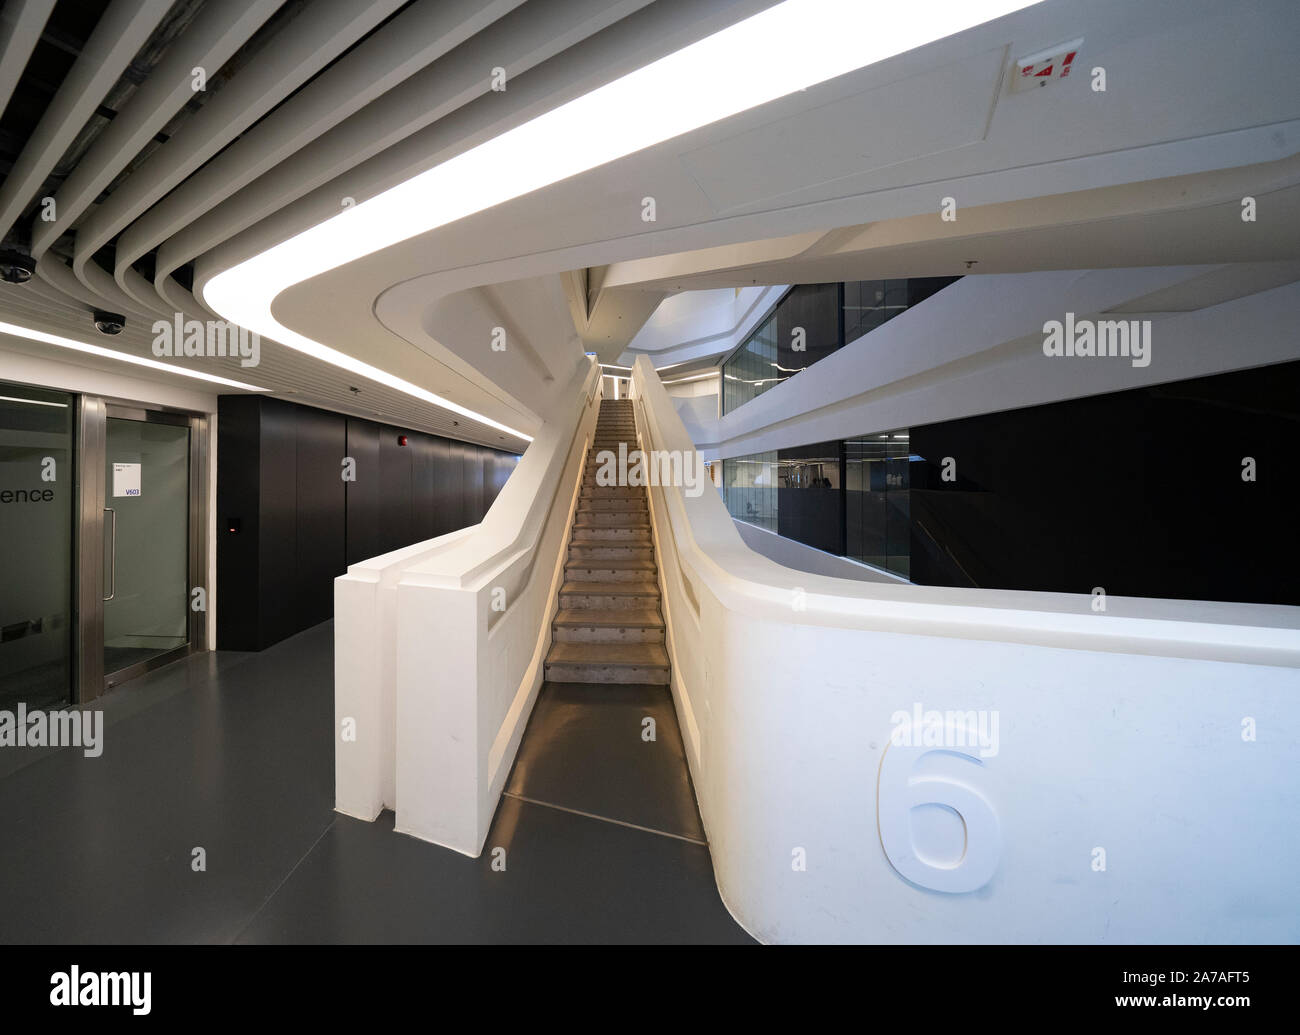 Interior of modern architecture of PolyU School of Design Jockey Club Innovation Tower at Hong Kong Polytechnic University, Hong Kong. Architect Zaha Stock Photo